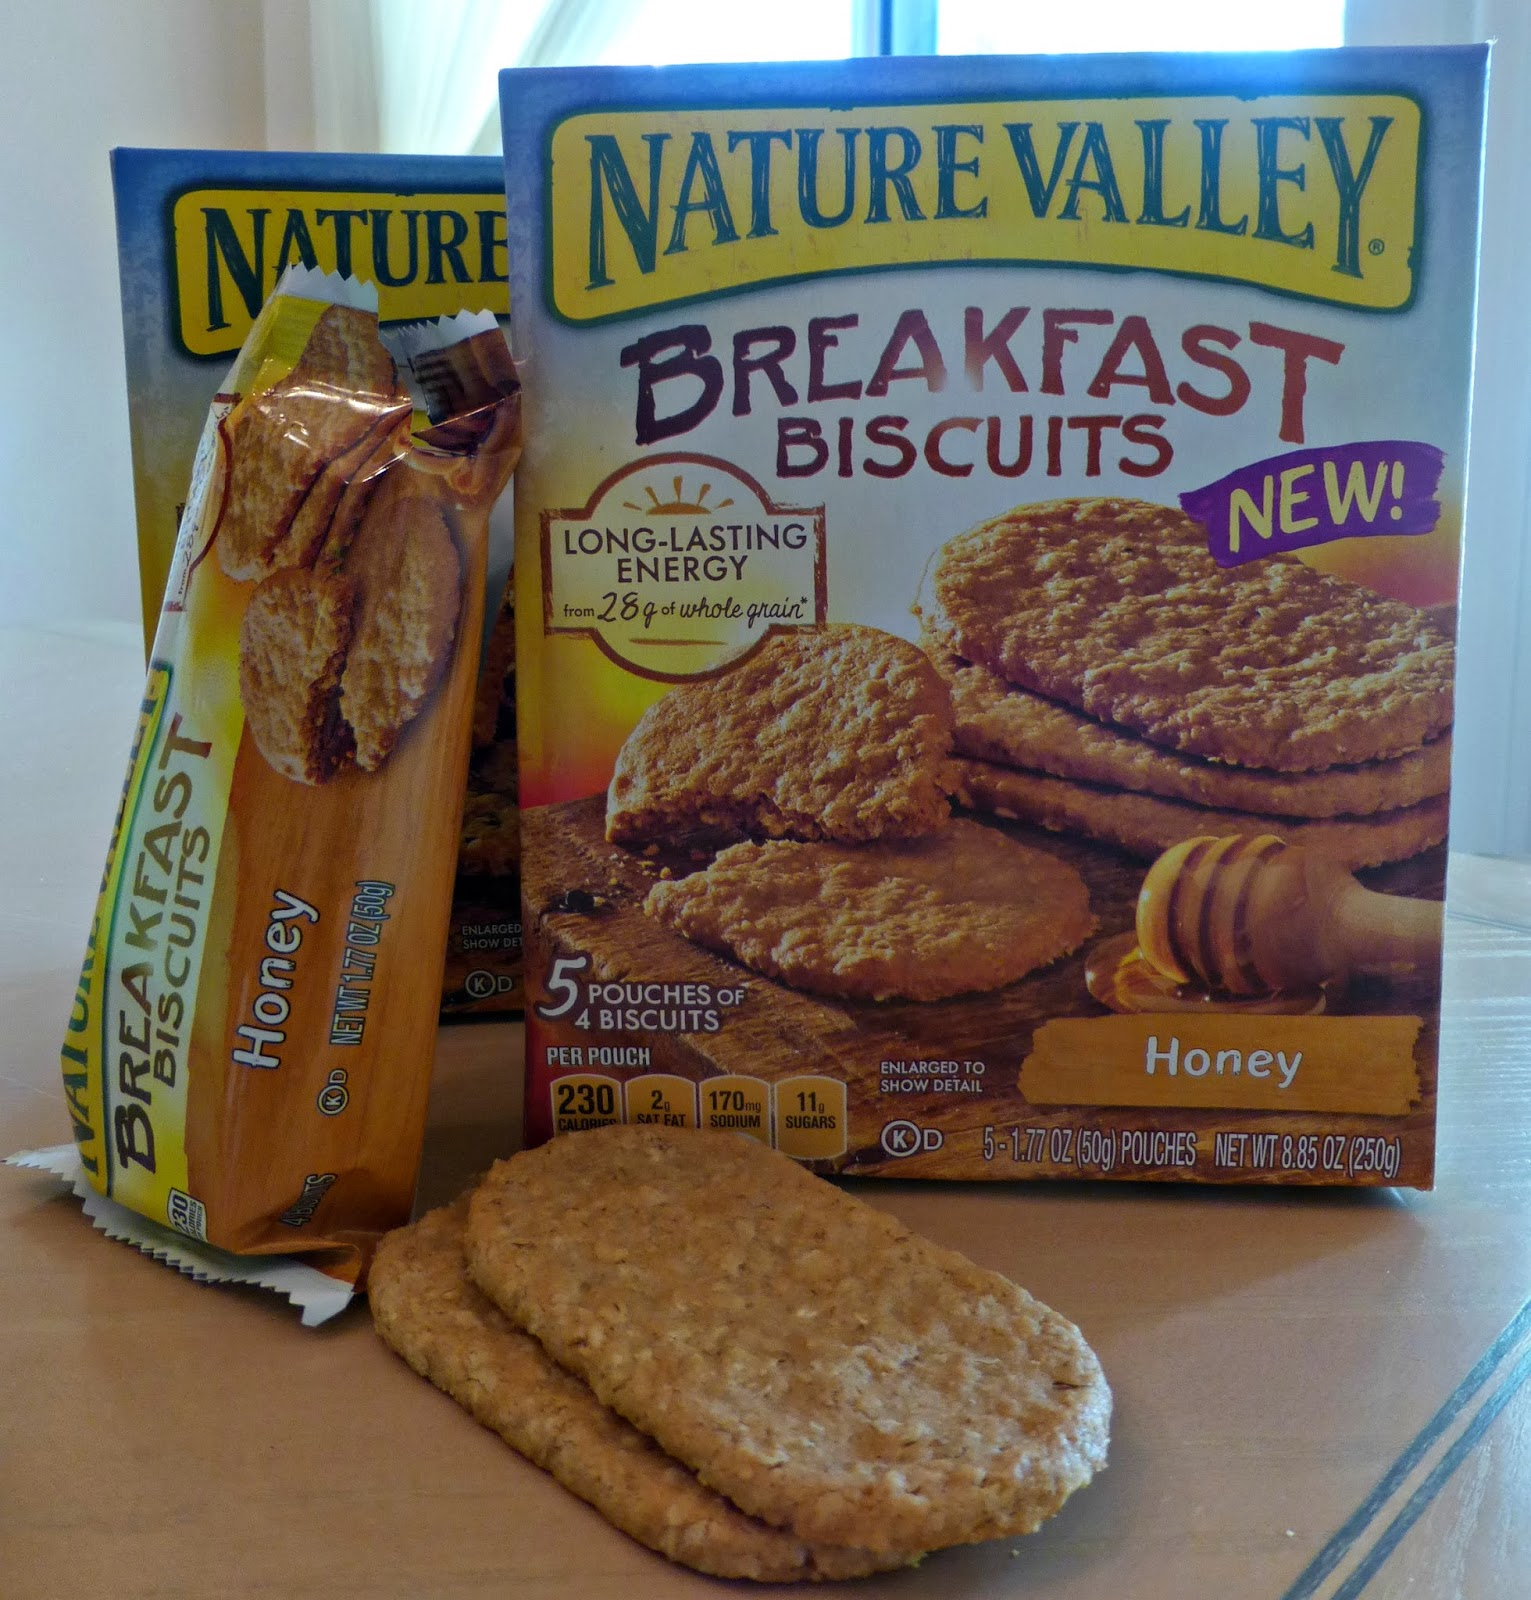 Discover all the tastiest blueberry nature valley breakfast biscuits recipes, hand-picked by home chefs and other food lovers like you.